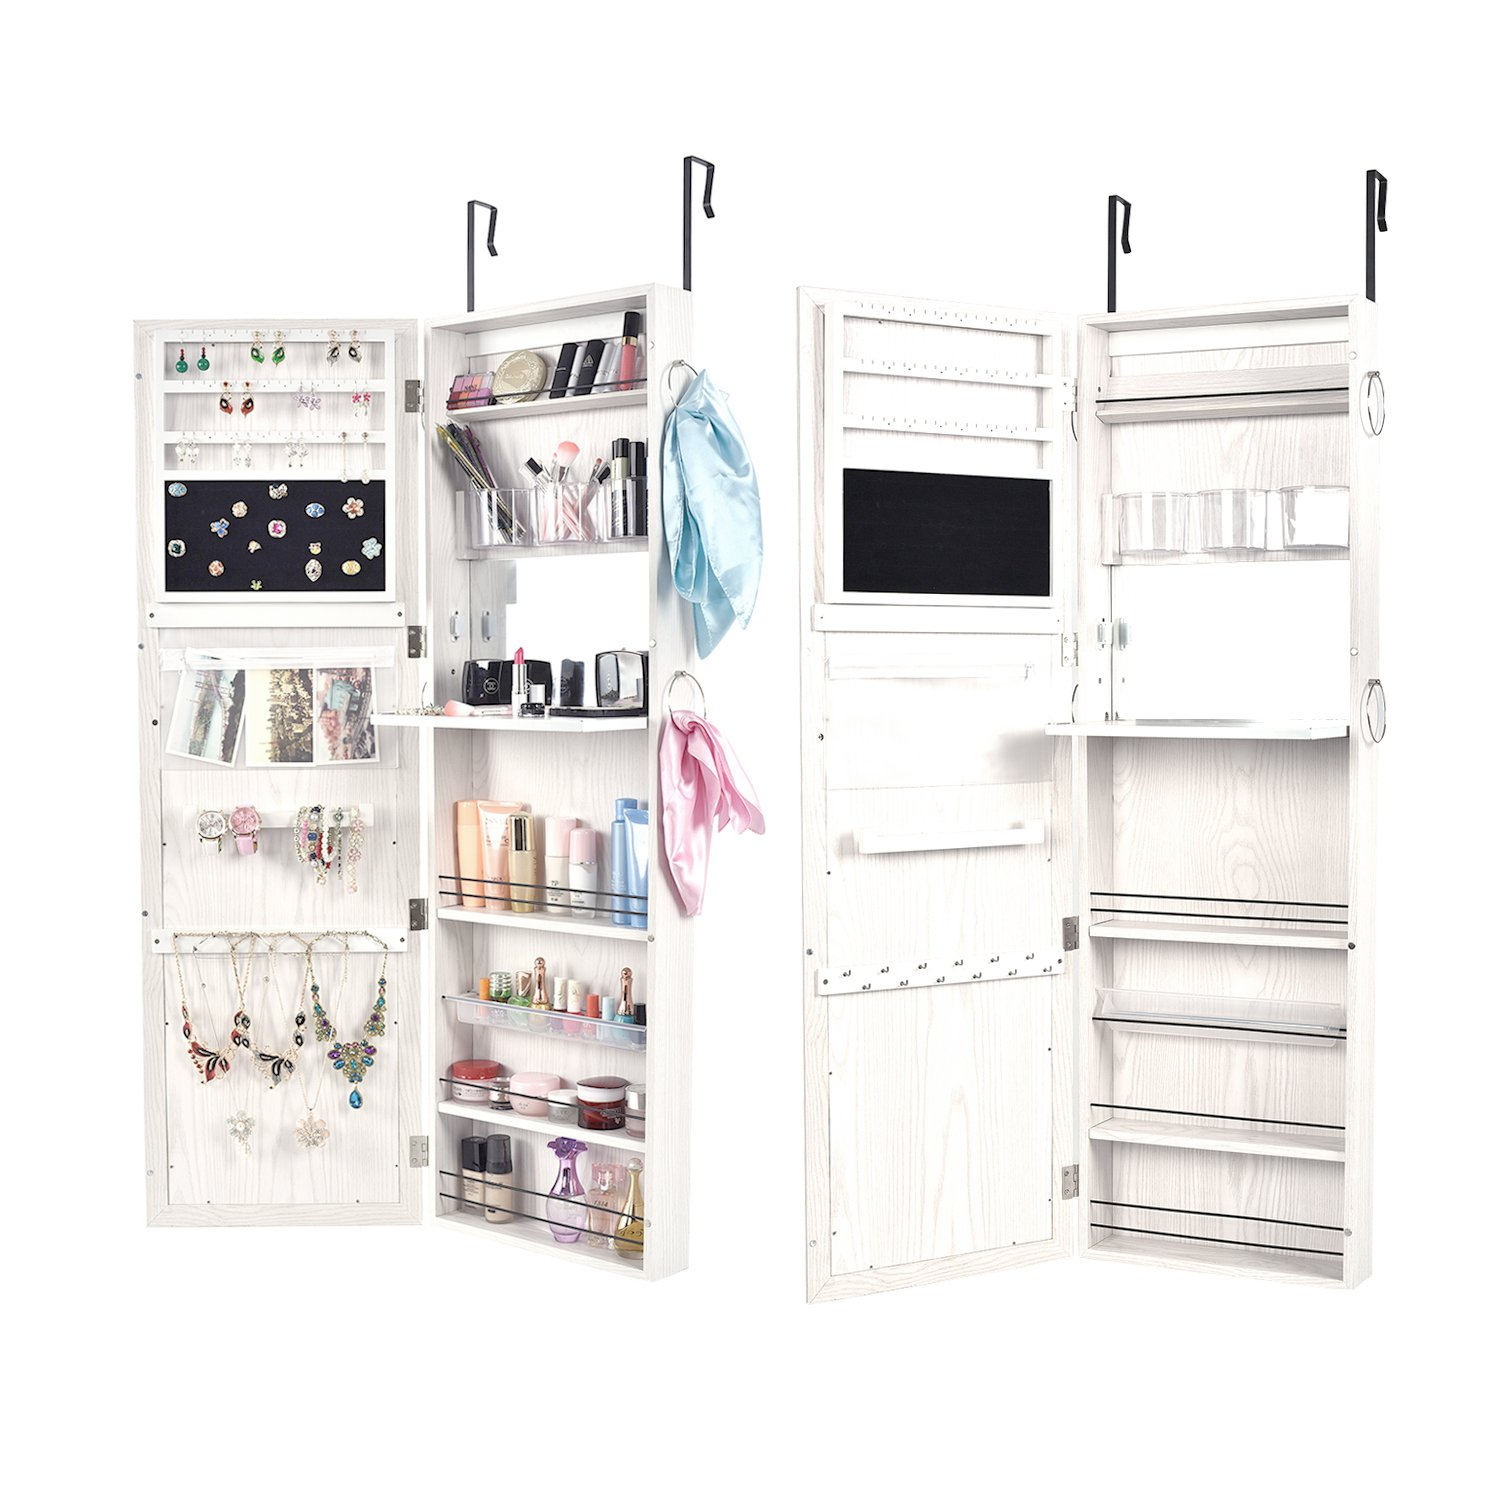 Bonnlo Jewelry Armoire Mirror Cabinet, cLockable Make up Bedroom Organizer with 4 Adjustable Angle Tilting Steady Closet Heavy Duty Wood Storage